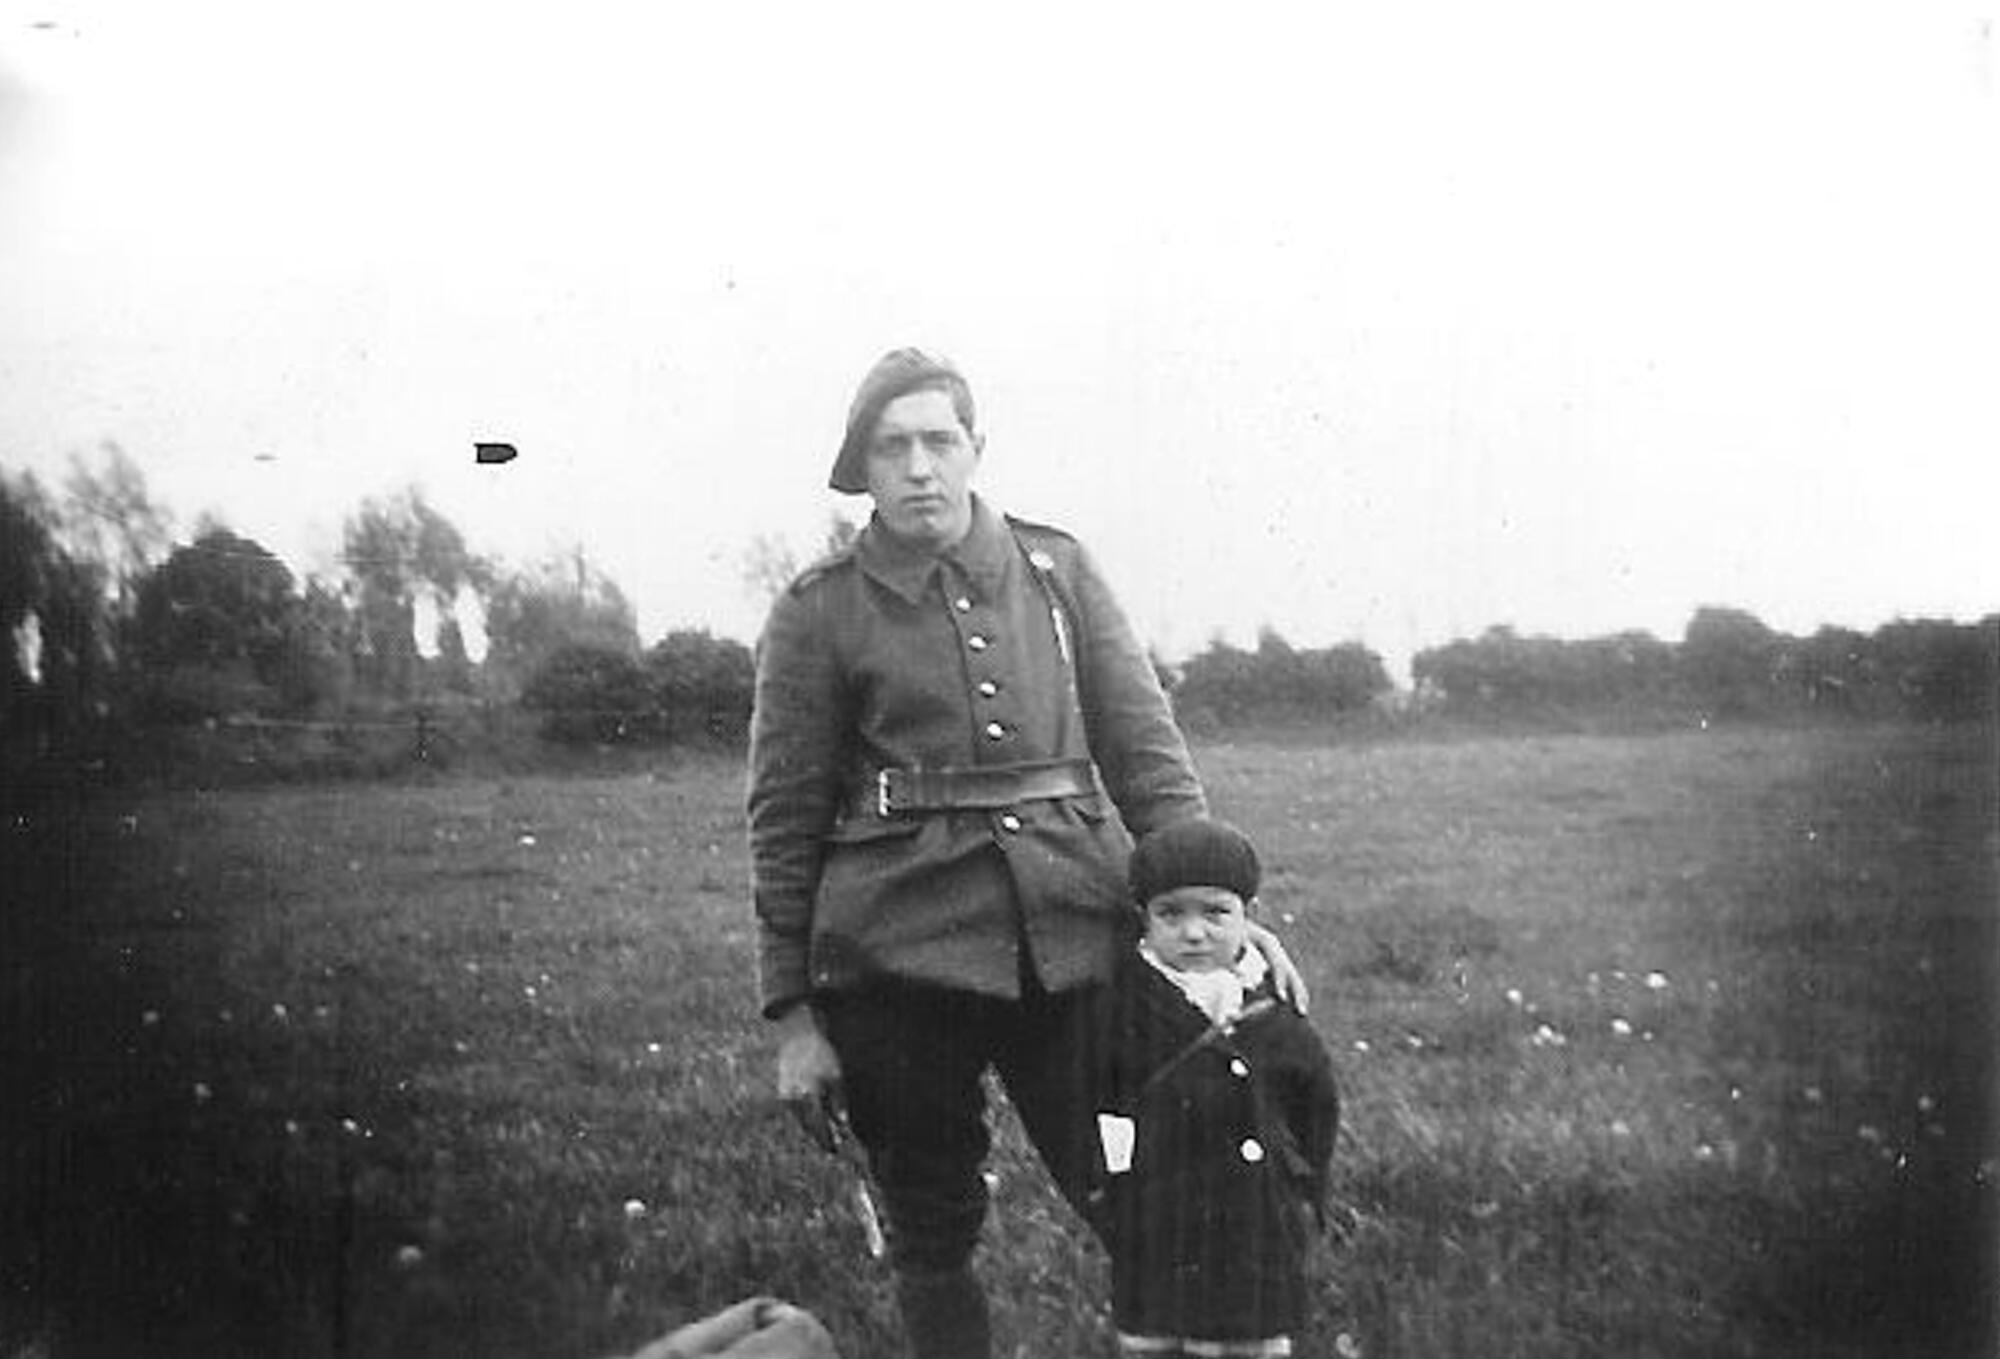 Marcel Pinte (right) is regarded as France's youngest-ever wartime resistance hero